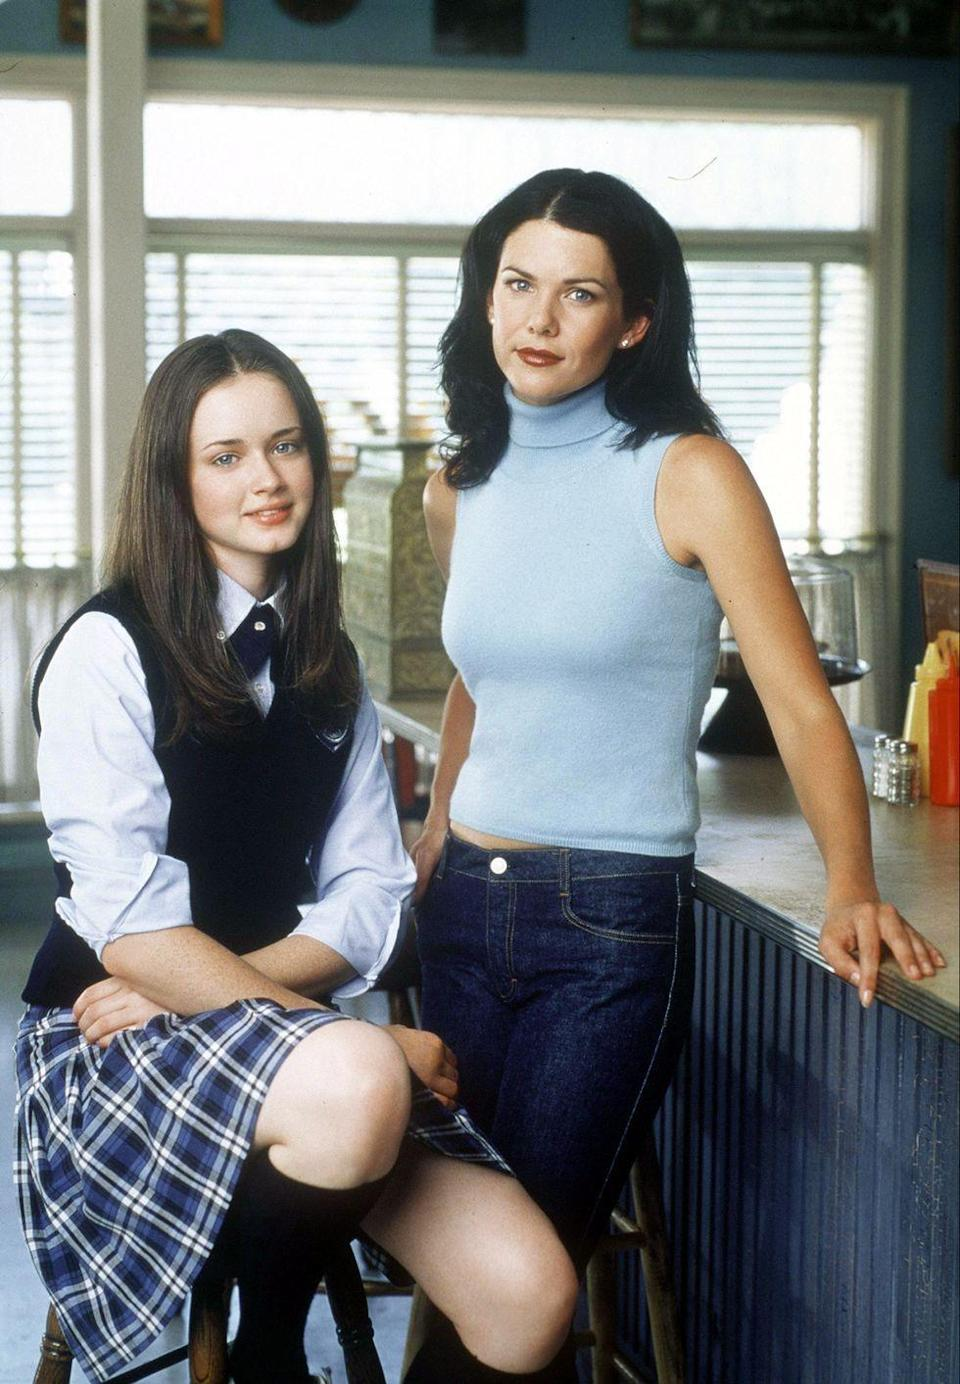 <p>Lorelai and Rory Gilmore turned to Luke's Diner for their caffeine fix on a daily basis in <em>Gilmore Girls</em>. When it came to food, whether they ordered a stack of pancakes or a burger and fries, everything looked irresistibly delicious. But it was their mother-daughter talks that couldn't be beat.</p>